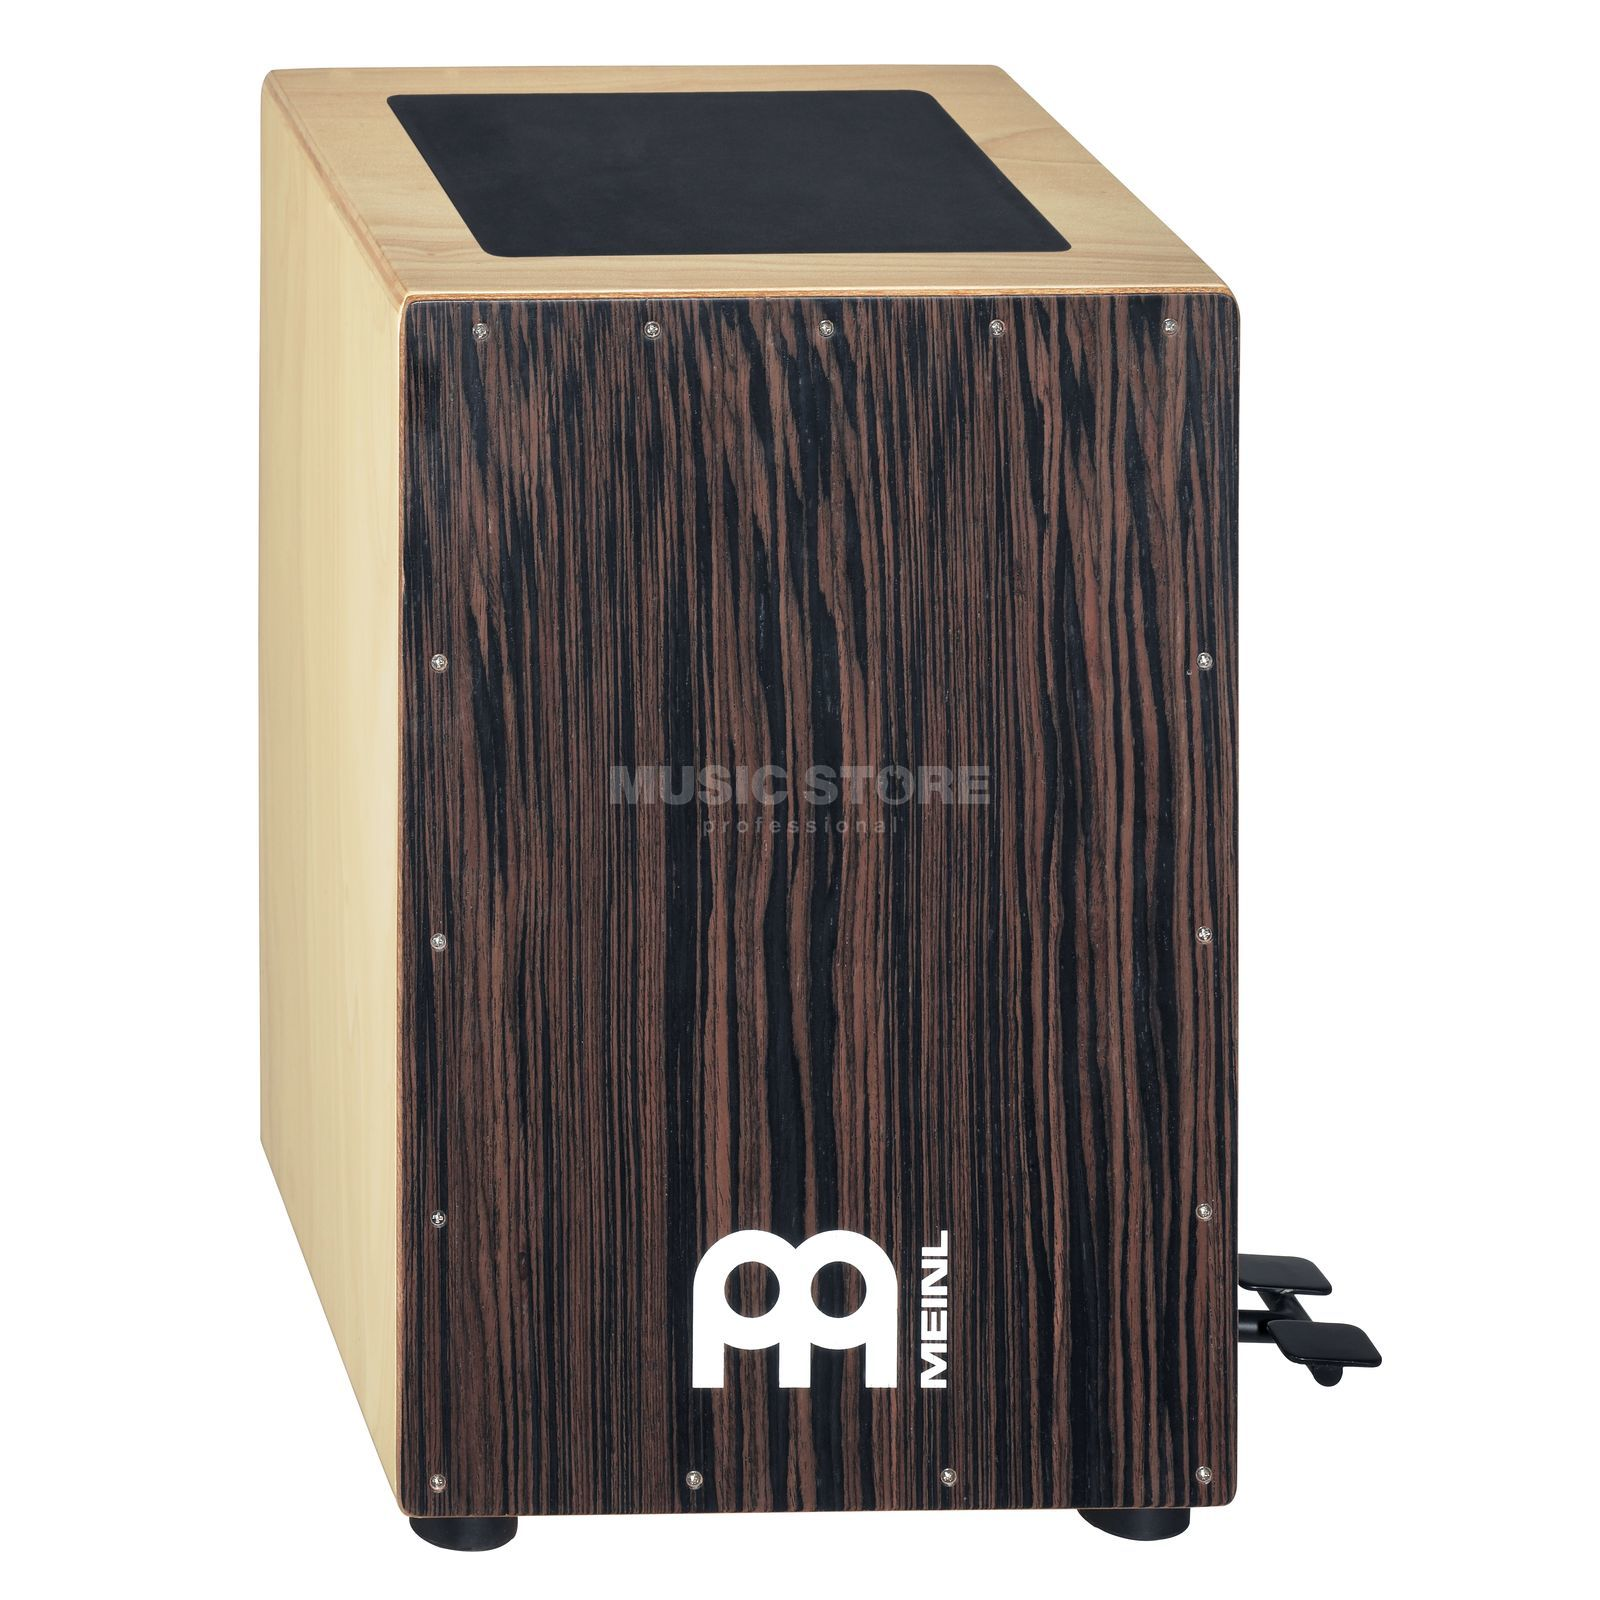 Meinl Bass Pedal Cajon CAJ5EB-M Frontplate: Ebony, Overstock Product Image